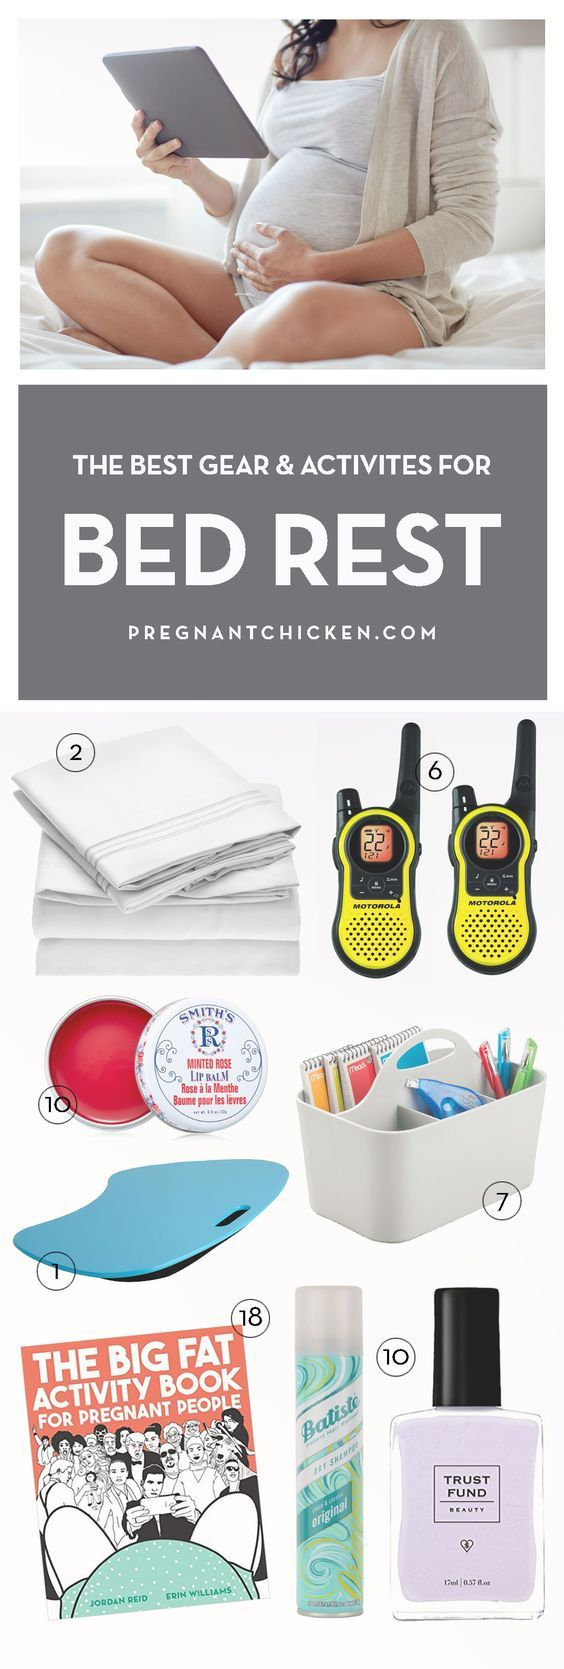 Surviving bed rest during pregnancy is hard. Here are some amazing ideas, gear and activities to help pass the time if you're looking for things to do – or if you're putting a kit together for someone.  via @pregnantchicken